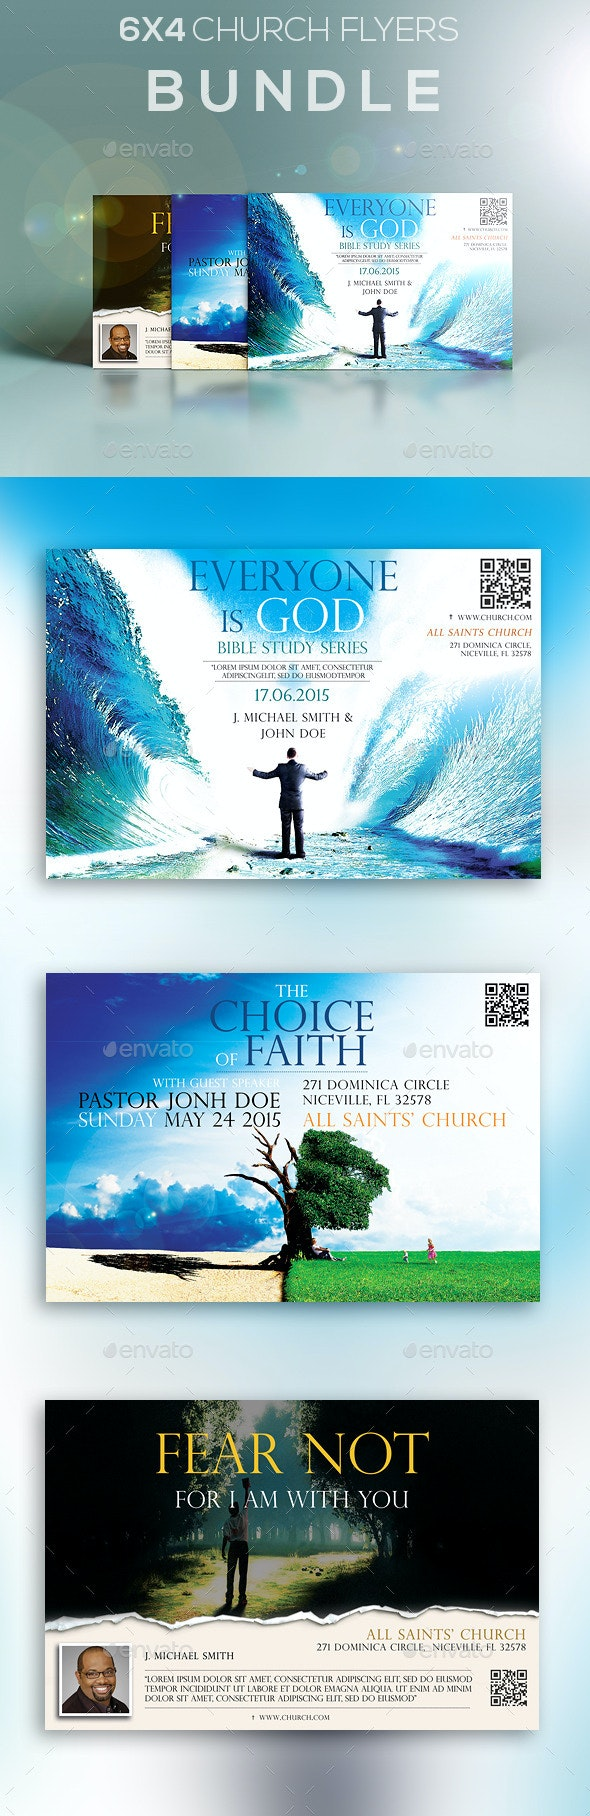 6x4 Church Flyers Bundle - Church Flyers